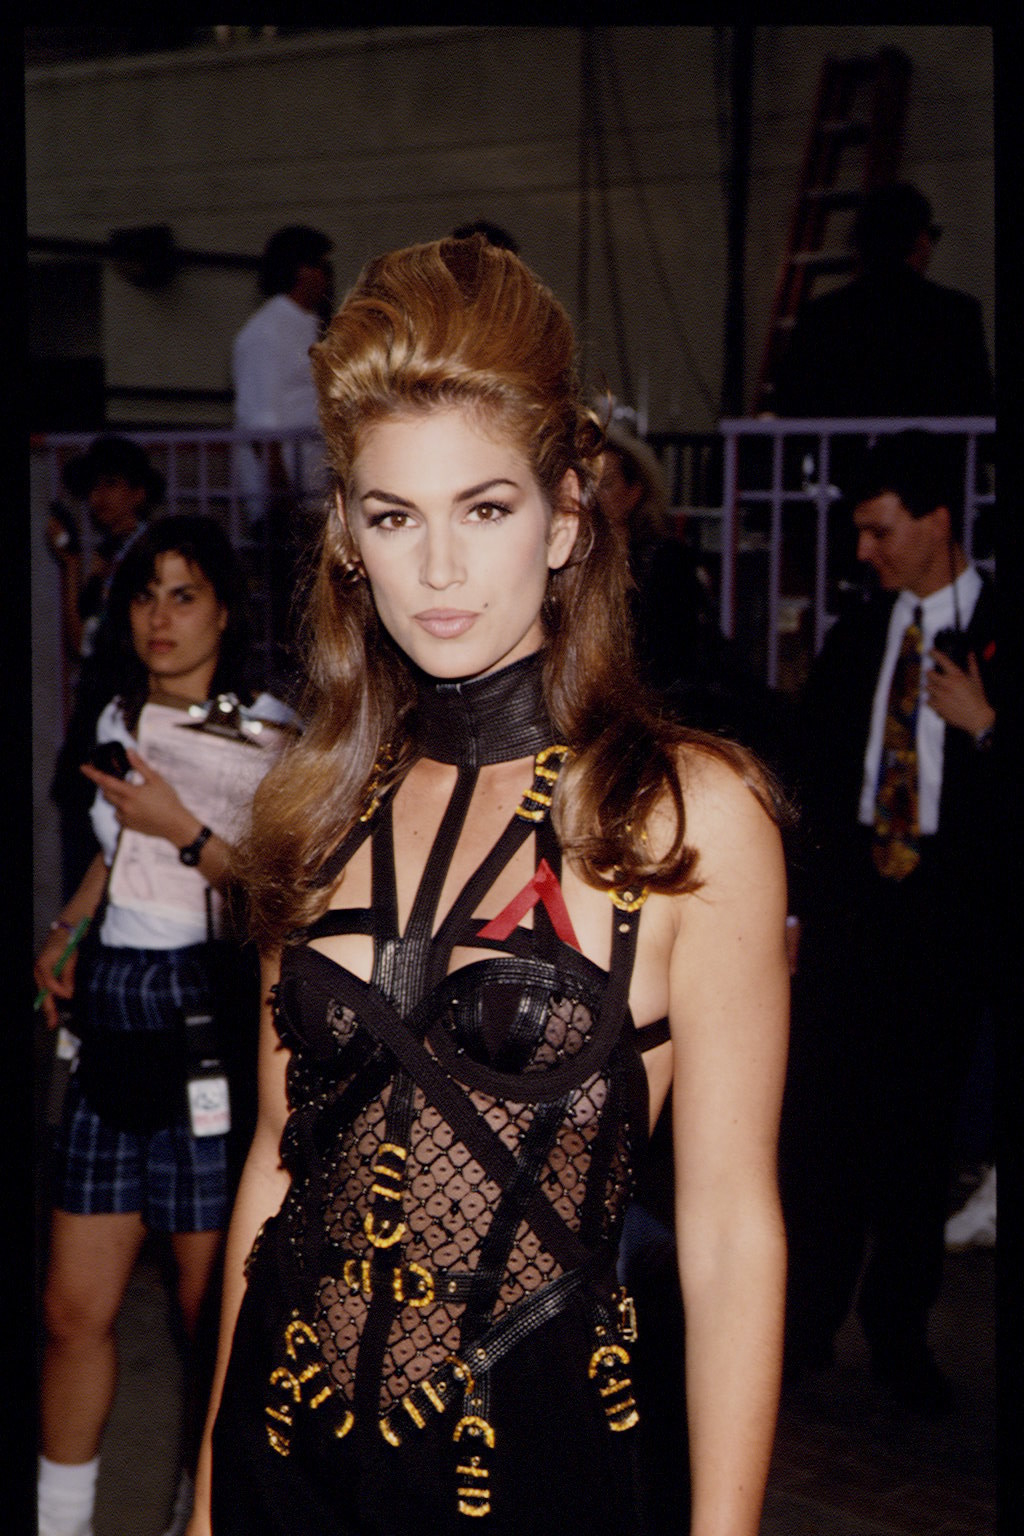 Cindy Crawford at the 1992 Video Music Awards